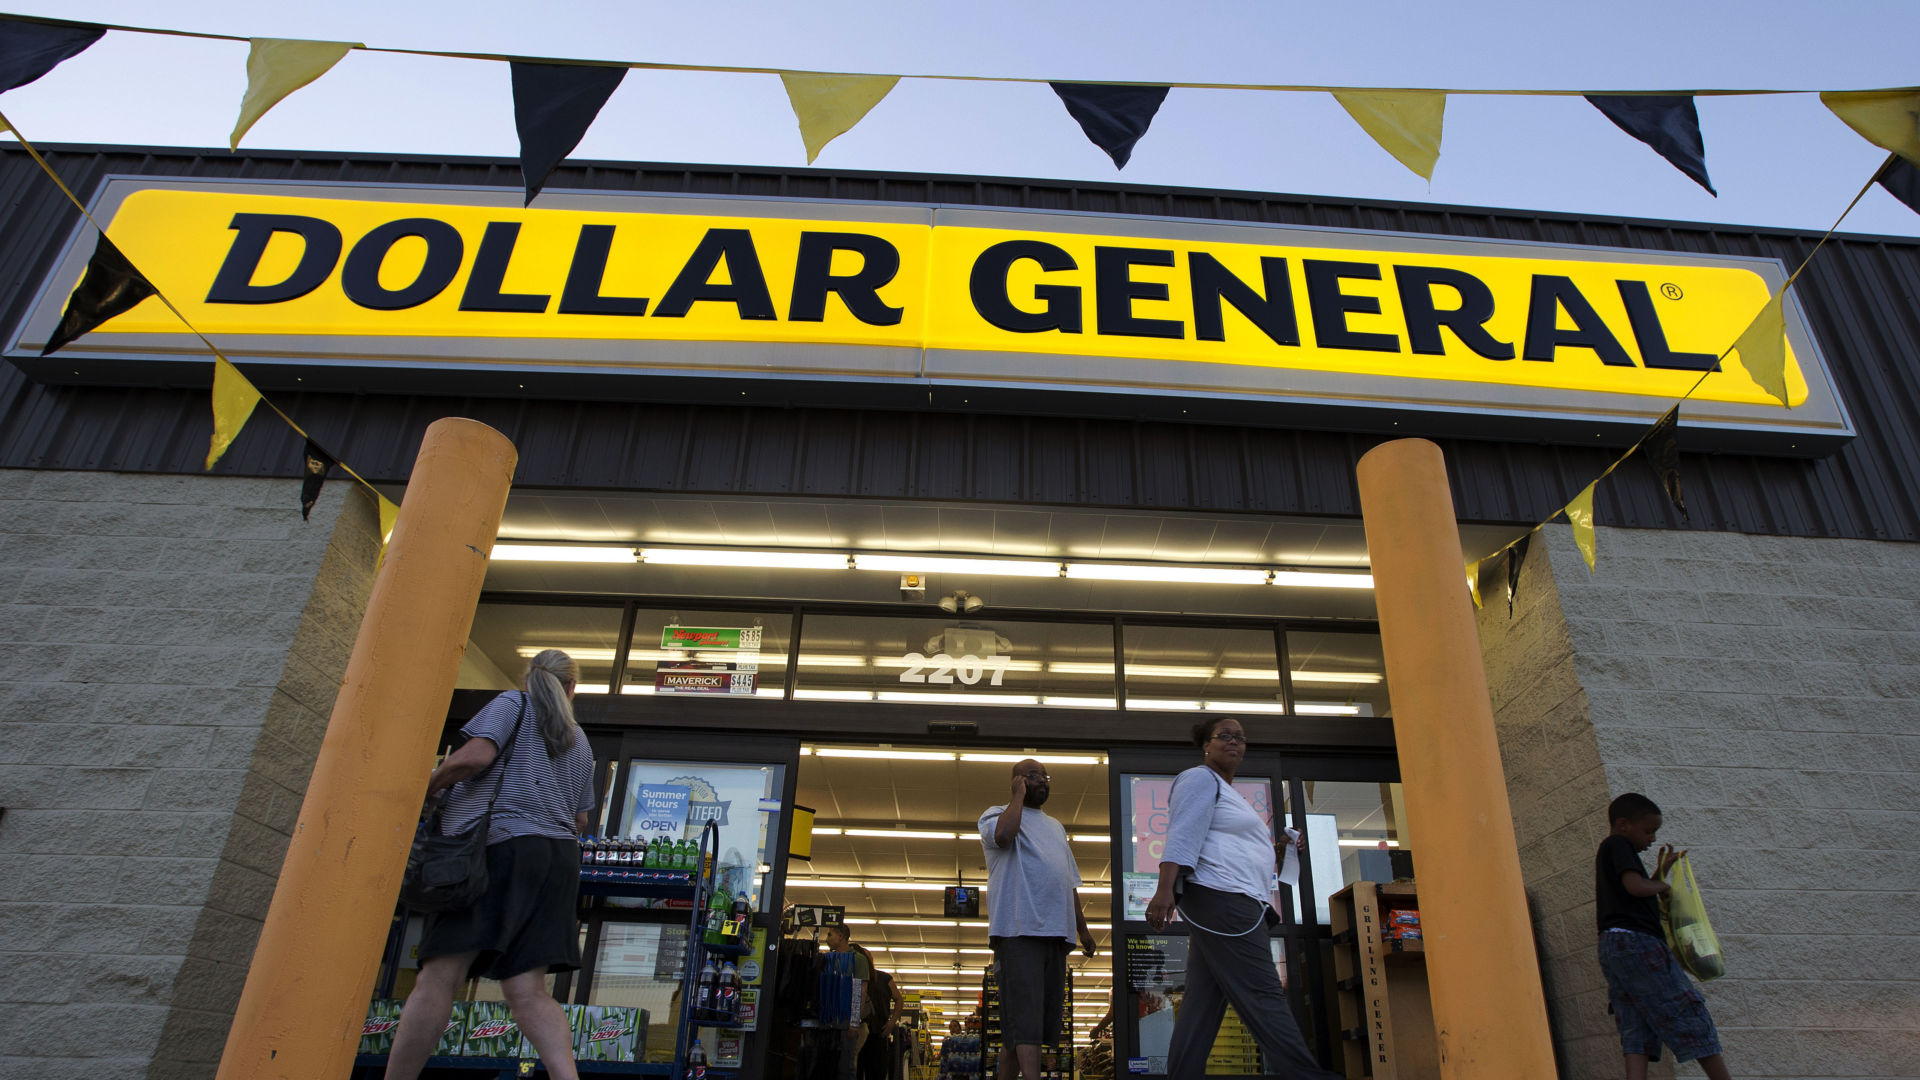 1dollargeneral